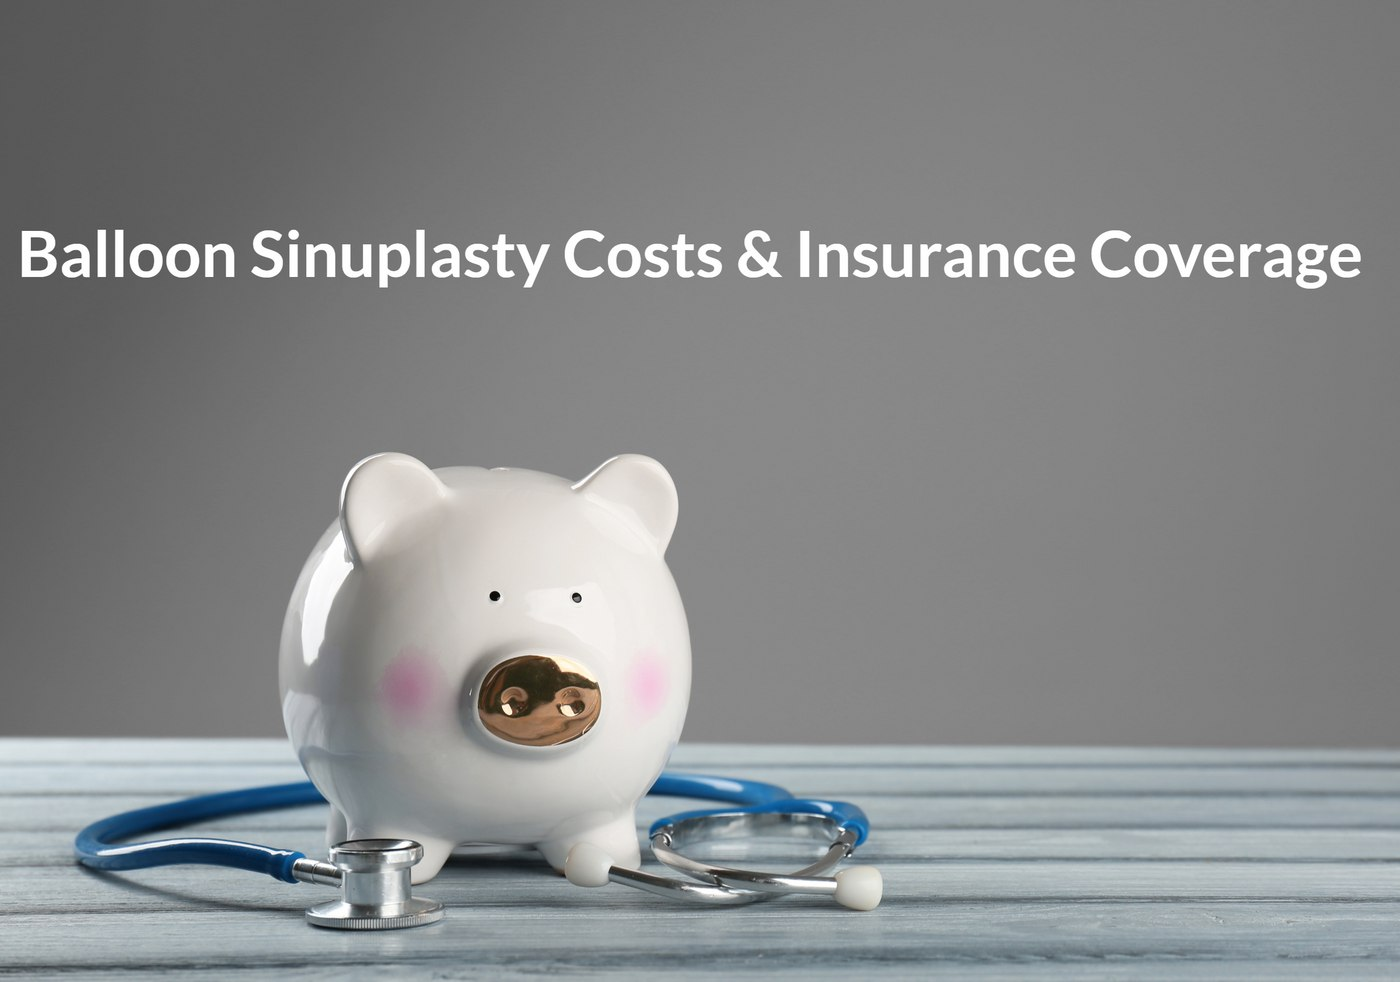 Balloon Sinuplasty Costs and insurance coverage in Houston Texas